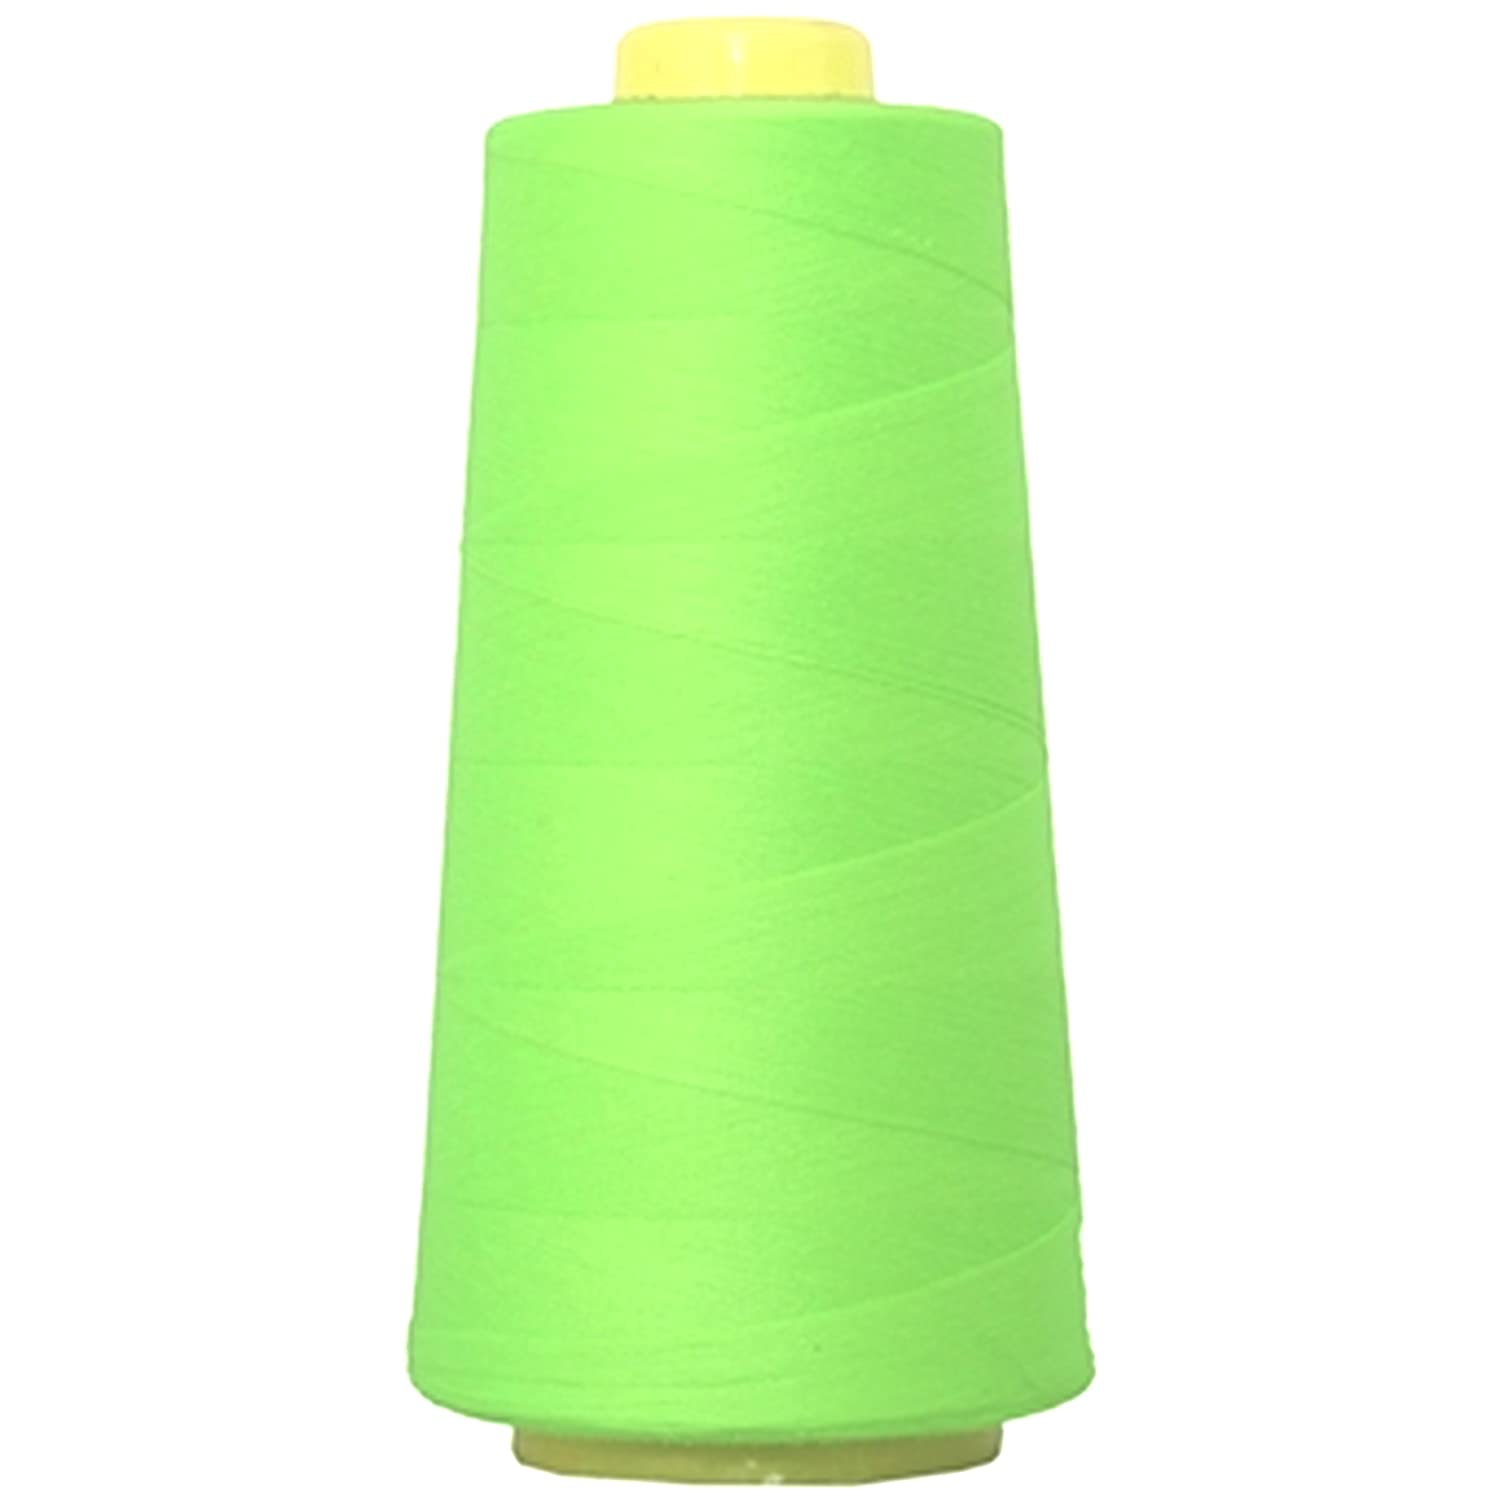 4 CONES 5000 YDS NEON YELLOW COMETA POLYESTER  OVERLOCK SEWING MACHINE THREAD